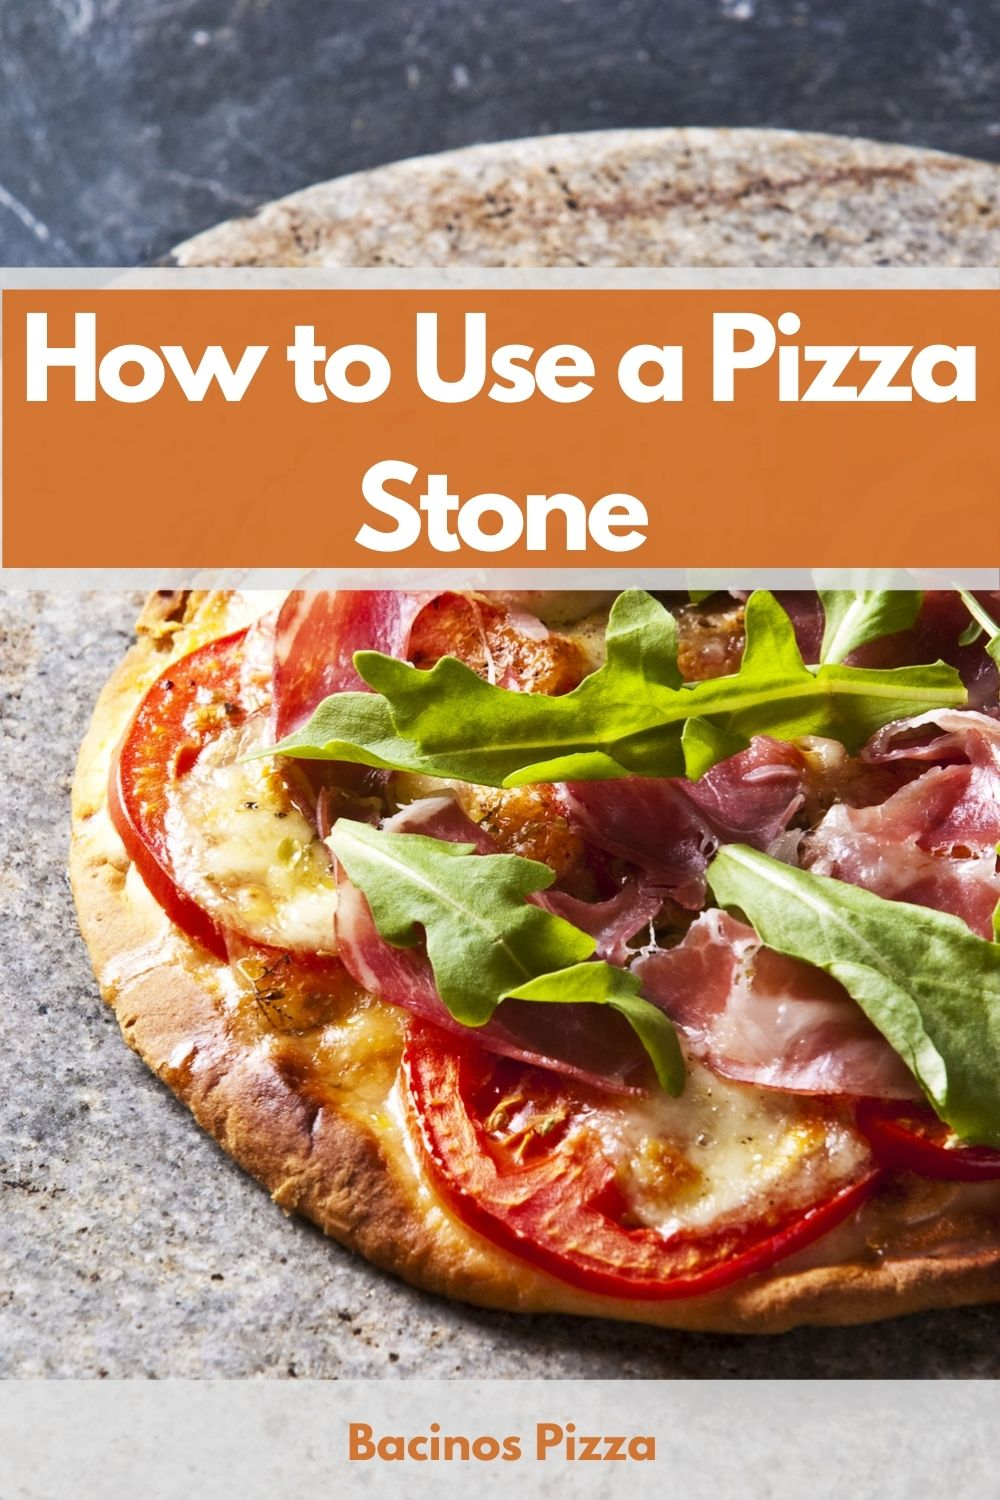 How to Use a Pizza Stone pin 2